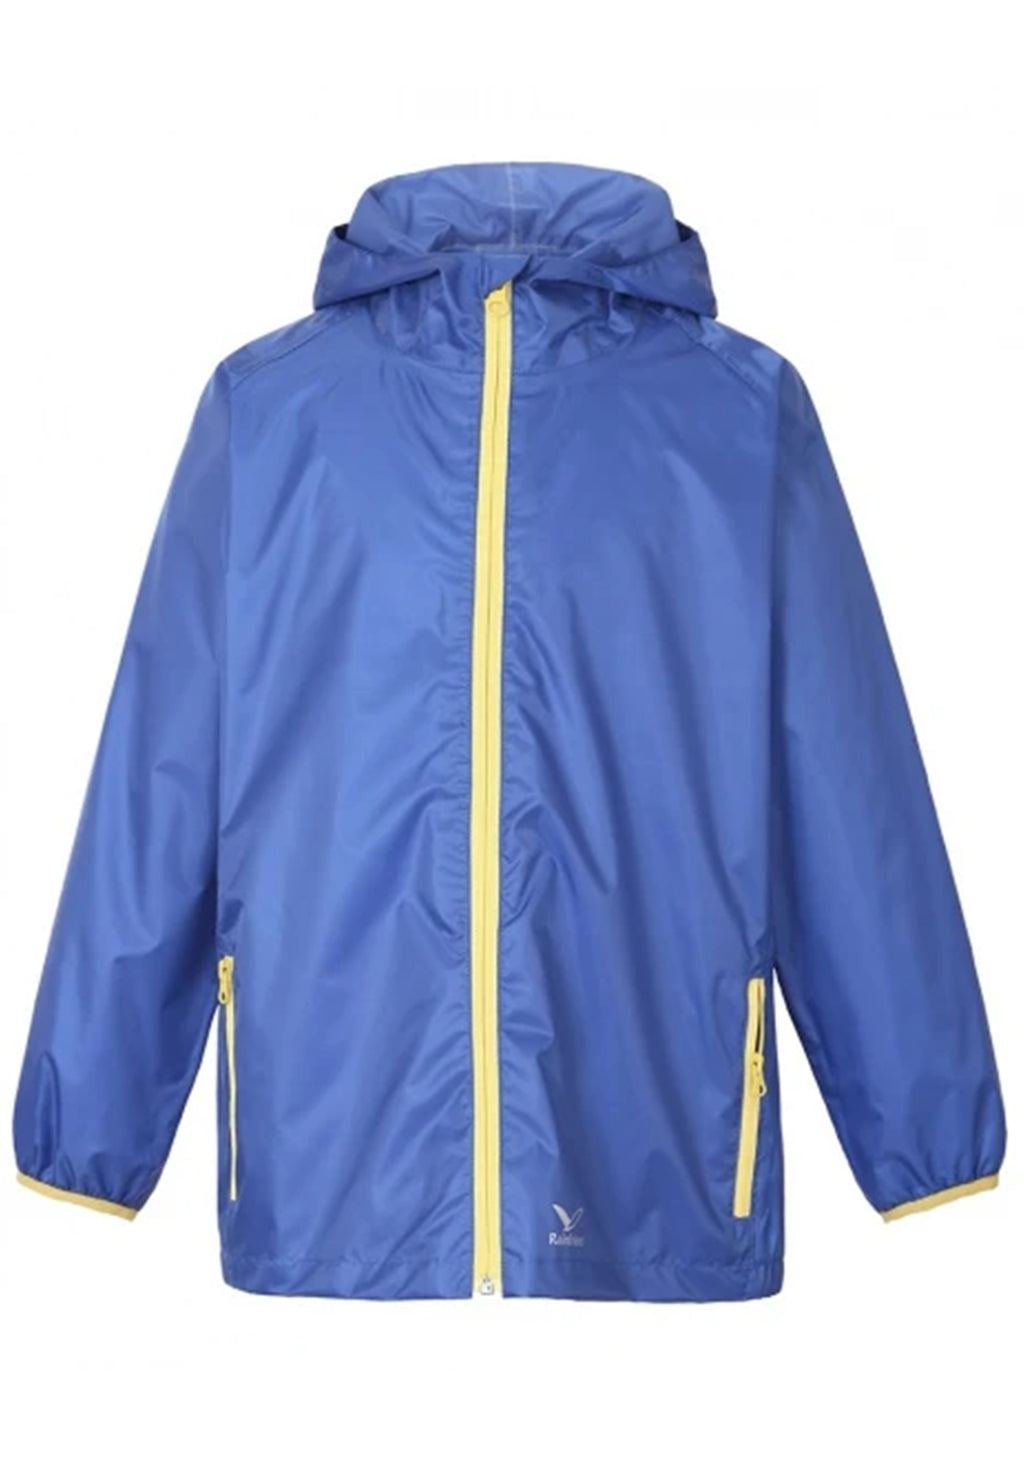 RAINBIRD UNISEX KIDS GOSTOW RAIN JACKET BLUE/YELLOW <BR> K8556